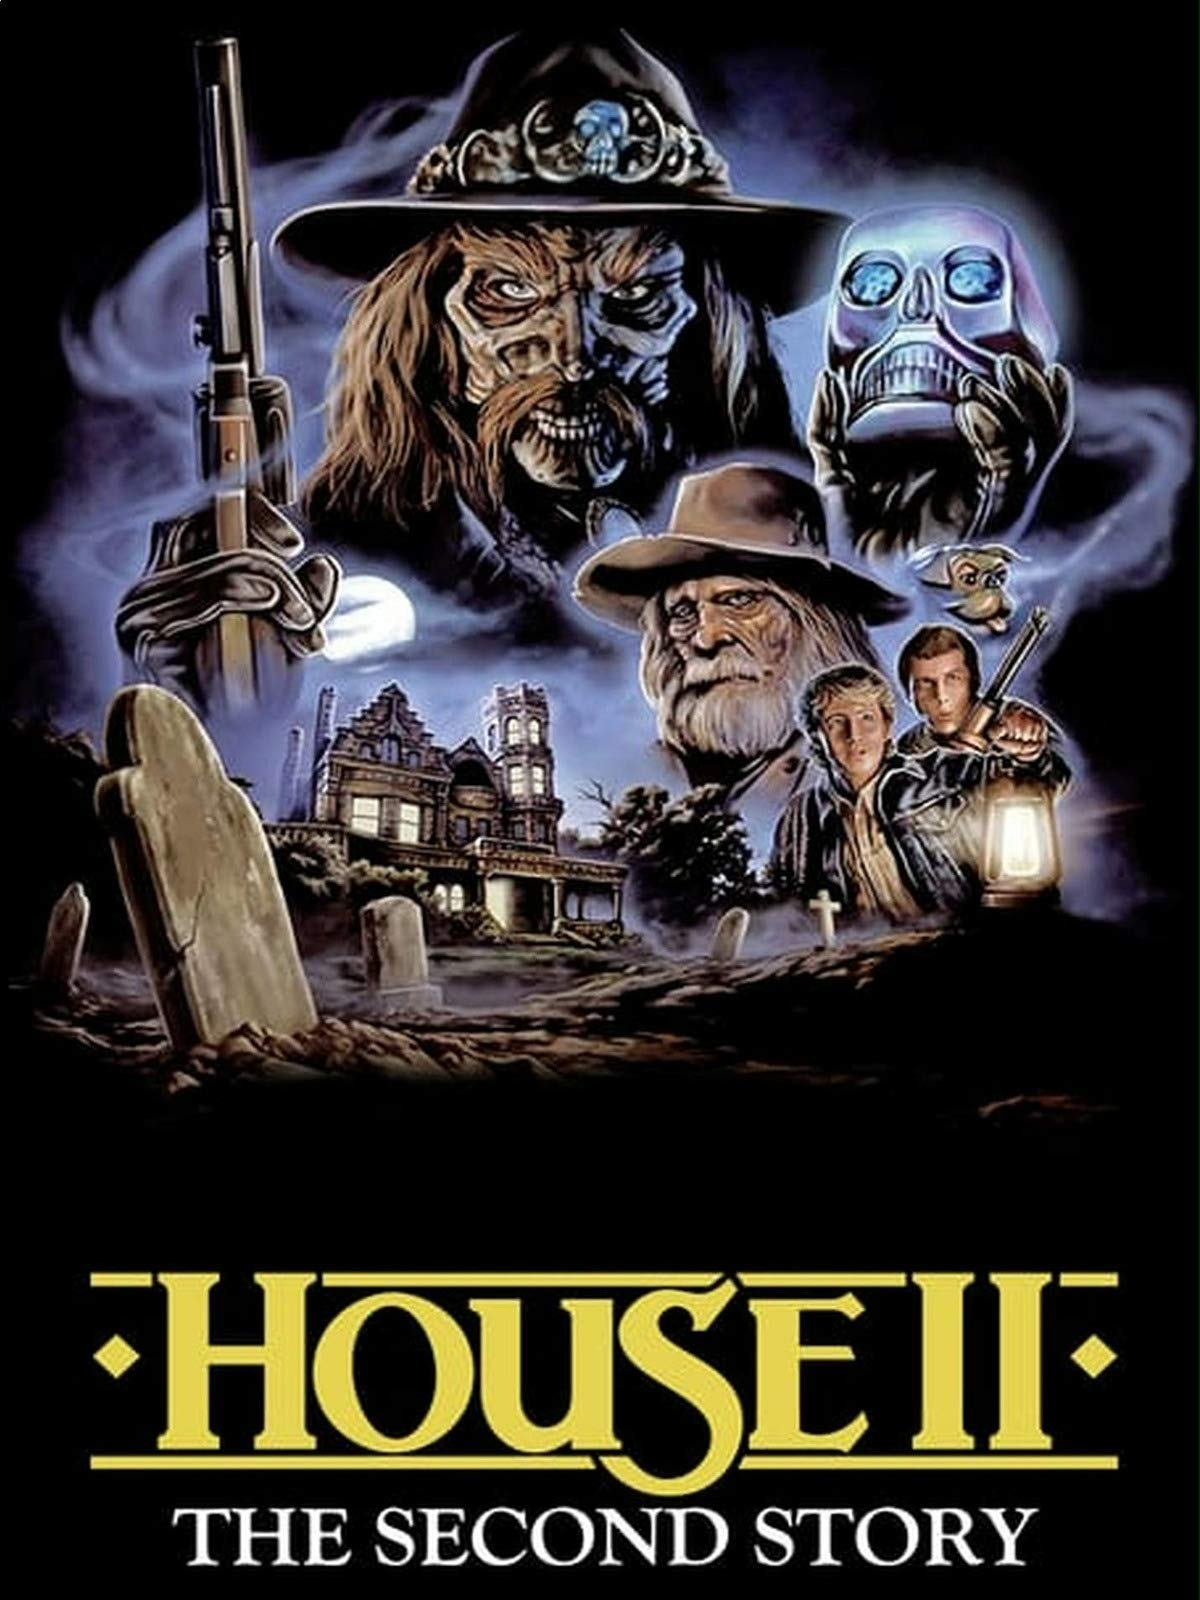 House II: The Second Story (1987) on Amazon Prime Video UK